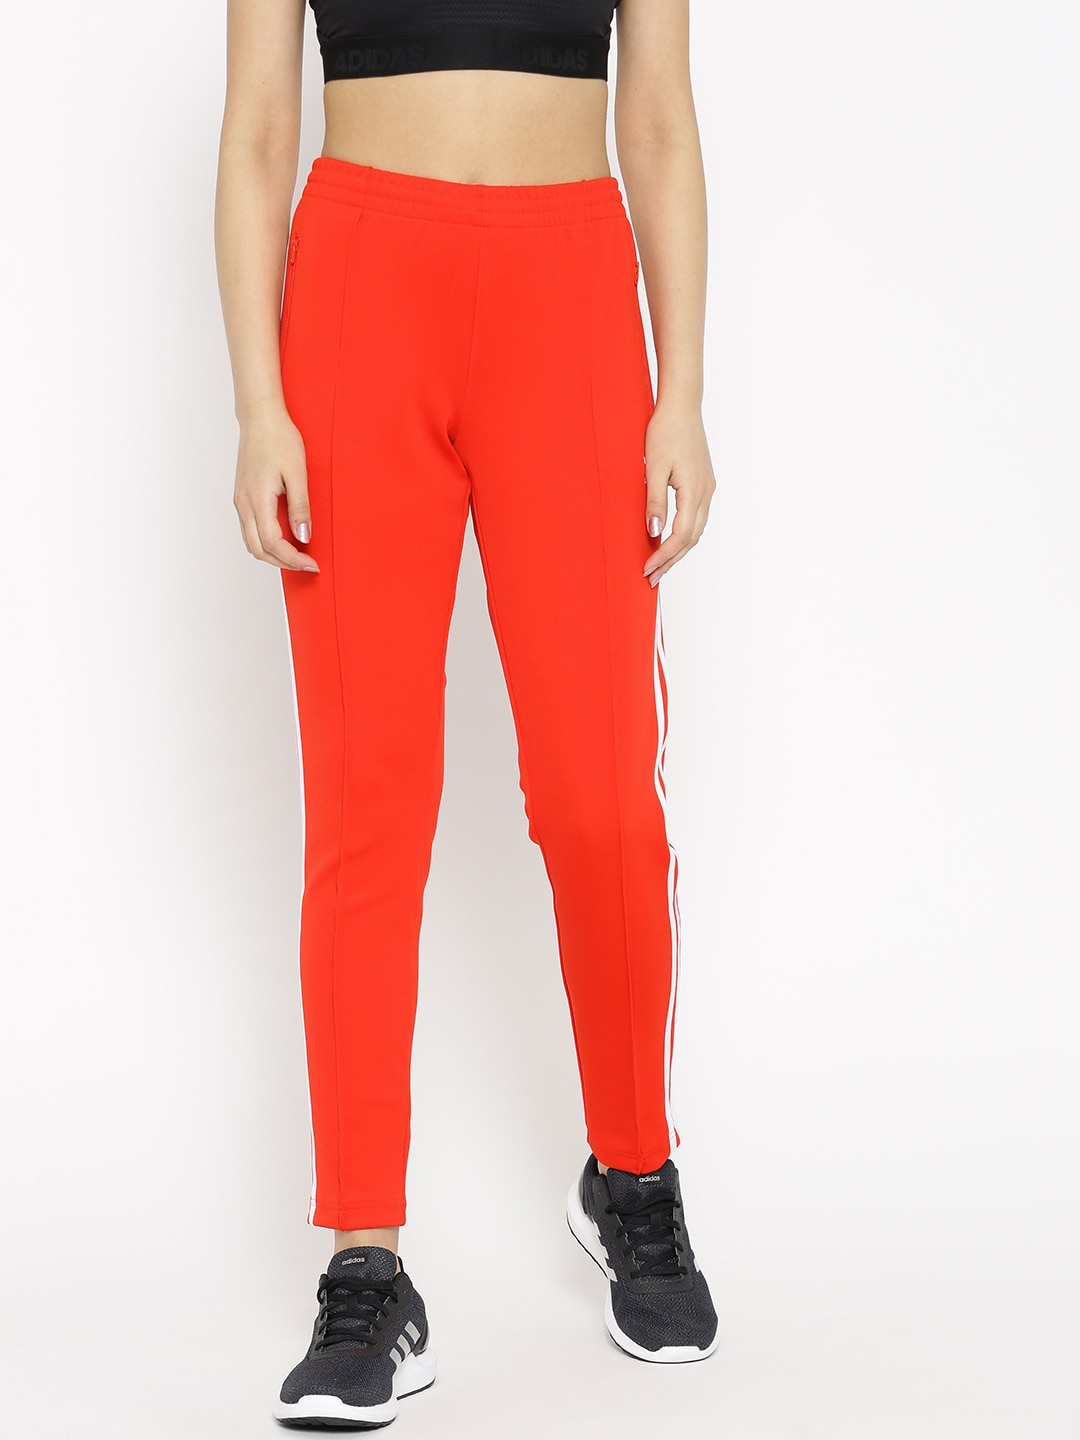 8837aa74339 Adidas Clothing - Buy Adidas Clothing Online in India